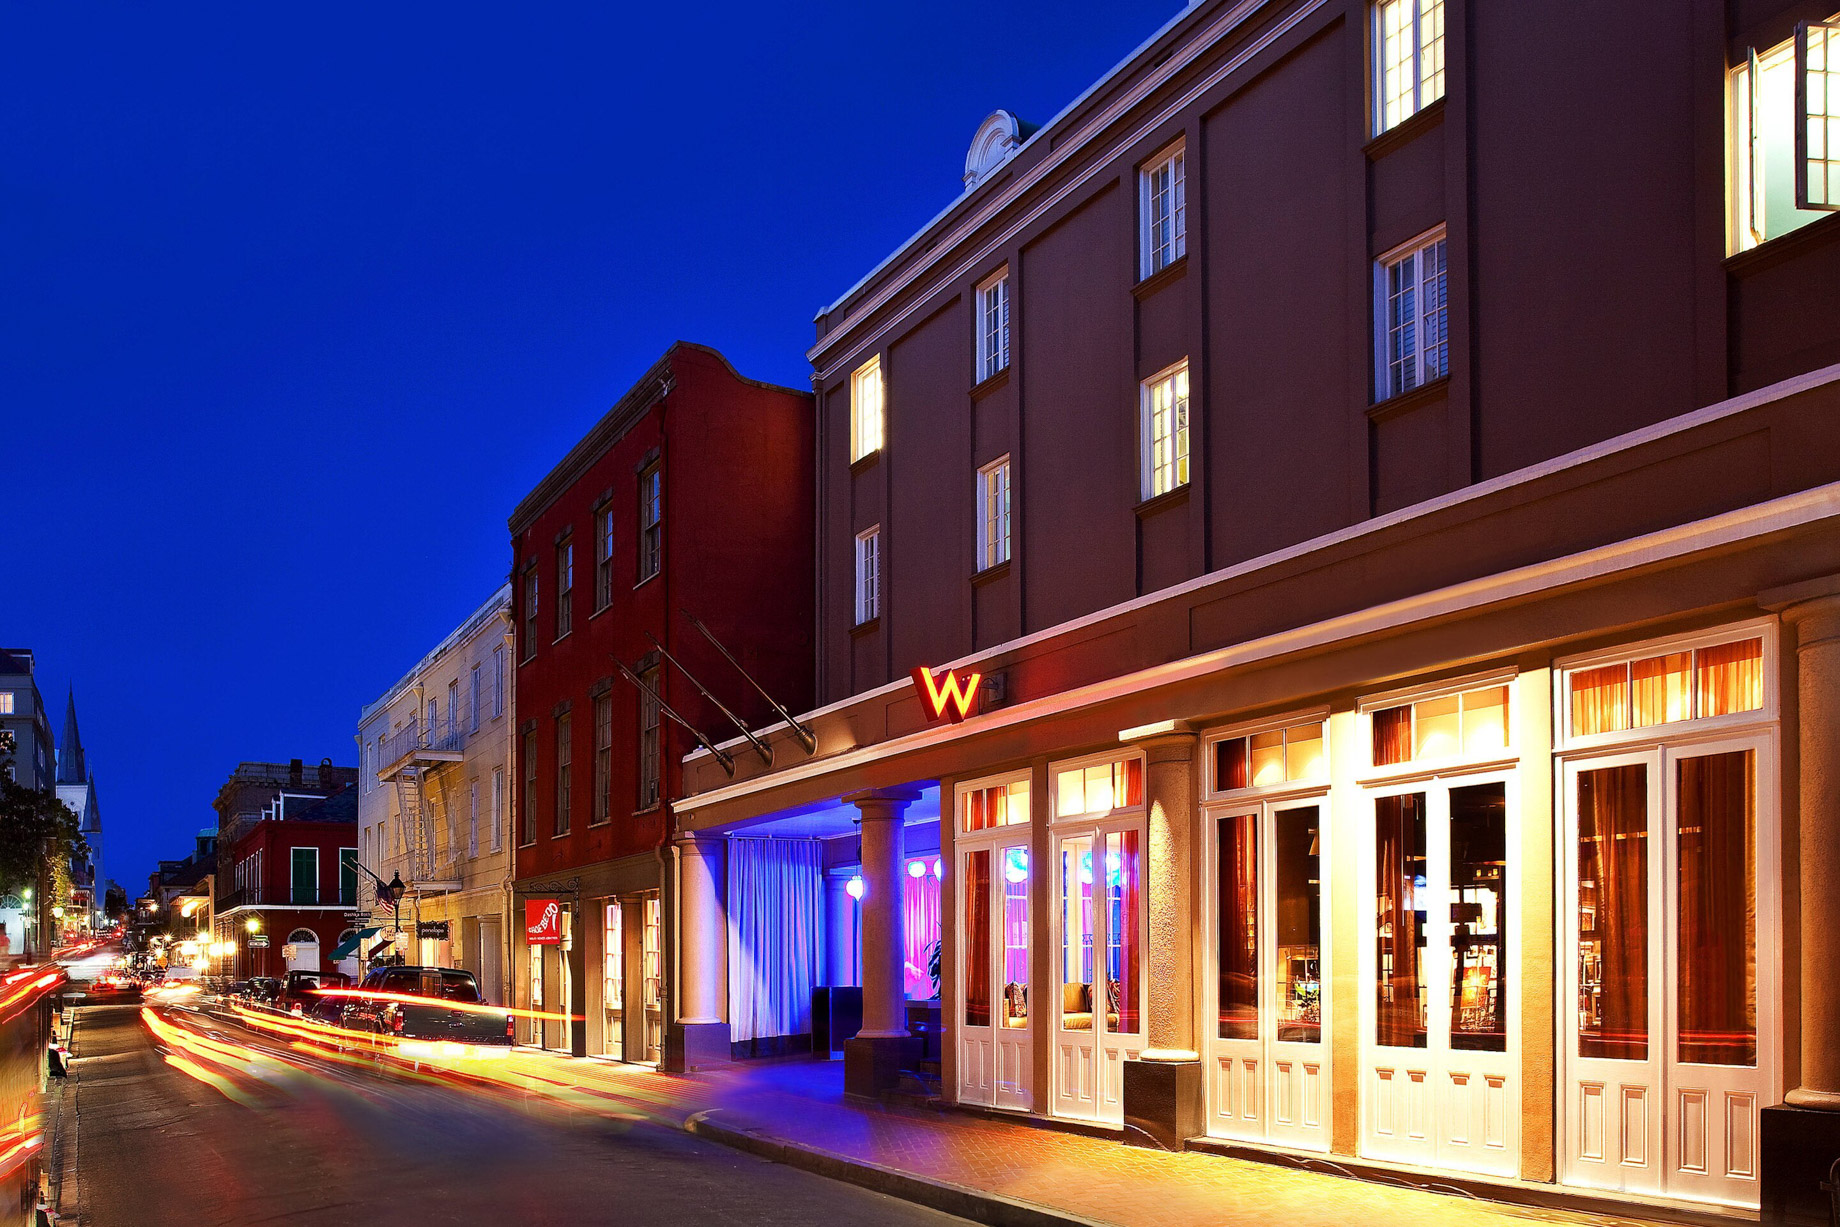 W New Orleans French Quarter Luxury Hotel - New Orleans, LA, USA - W New Orleans French Quarter